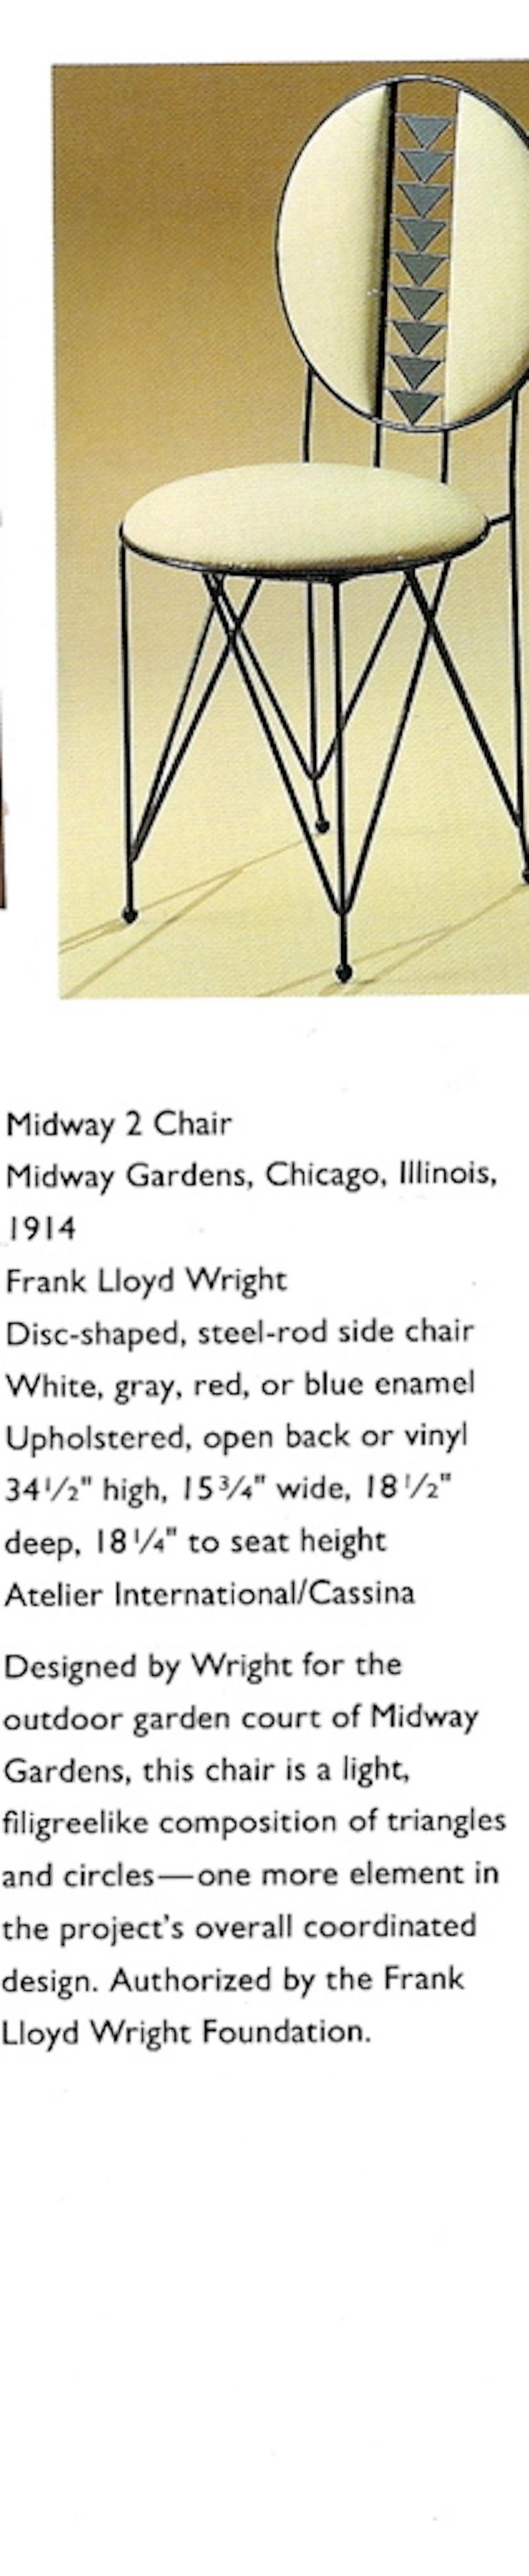 Frank Lloyd Wright Cassina Midway Steel Dining Set for 6 1914 / 1986 Red & Gray For Sale 2